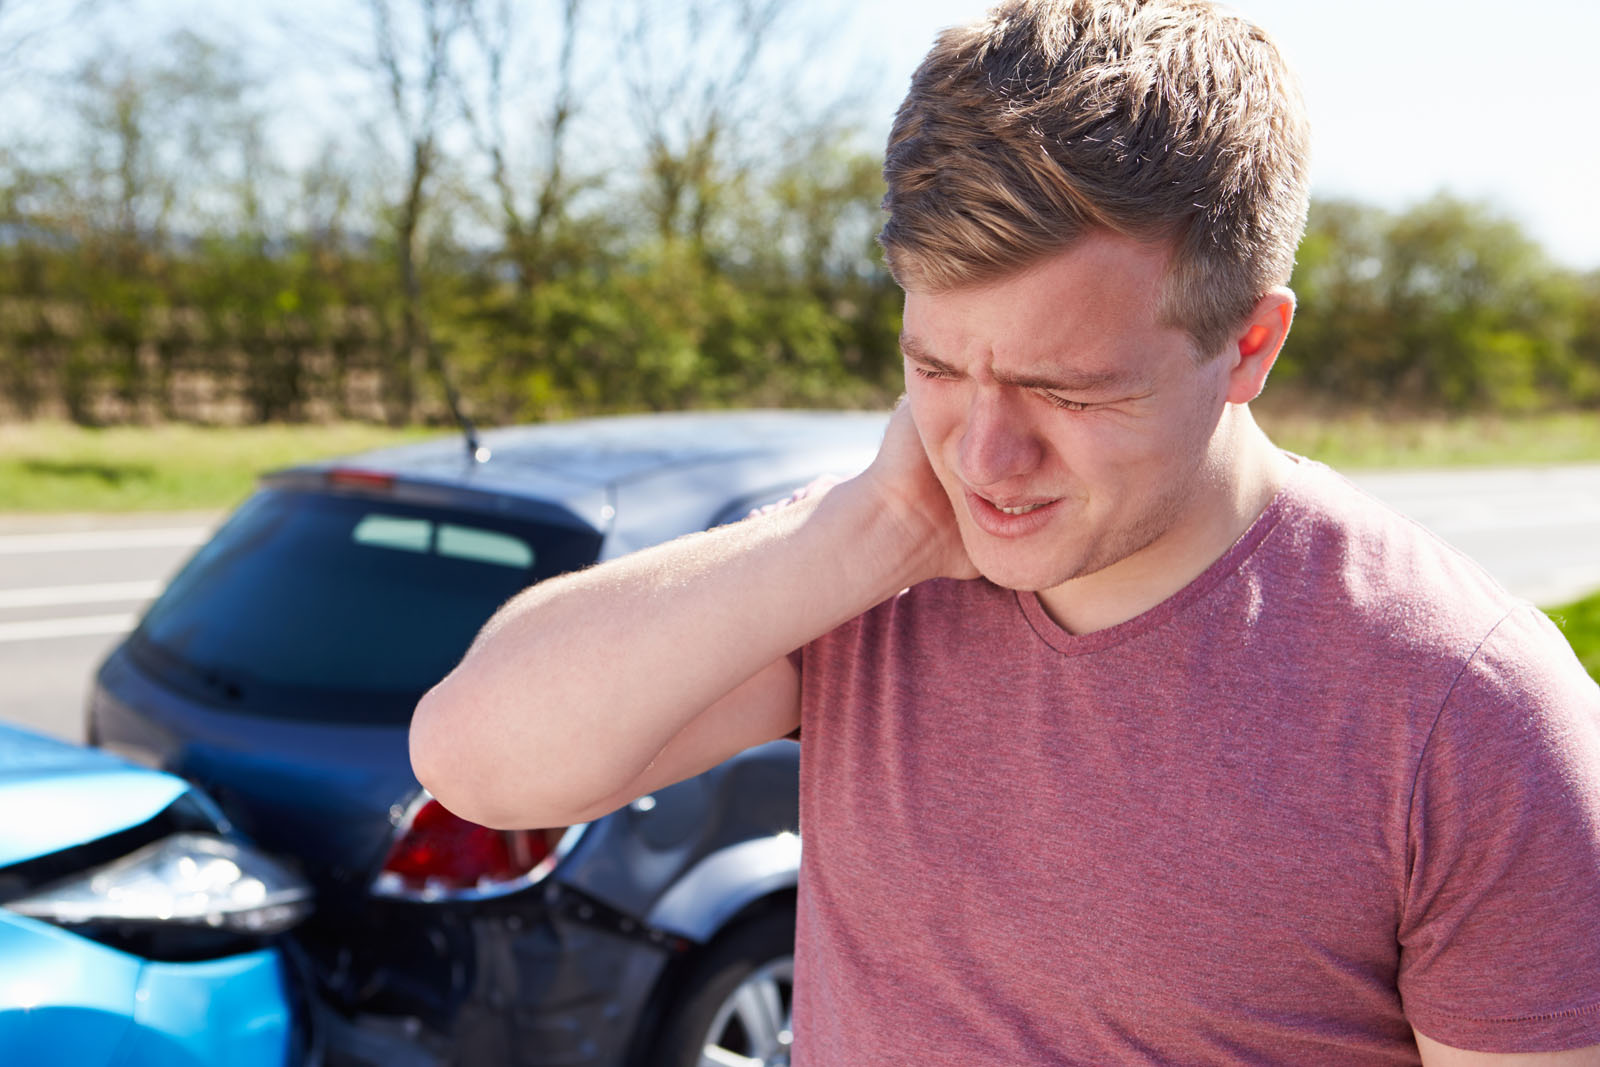 man holding his neck from whiplash pain from an auto accident injury; car accident in the background